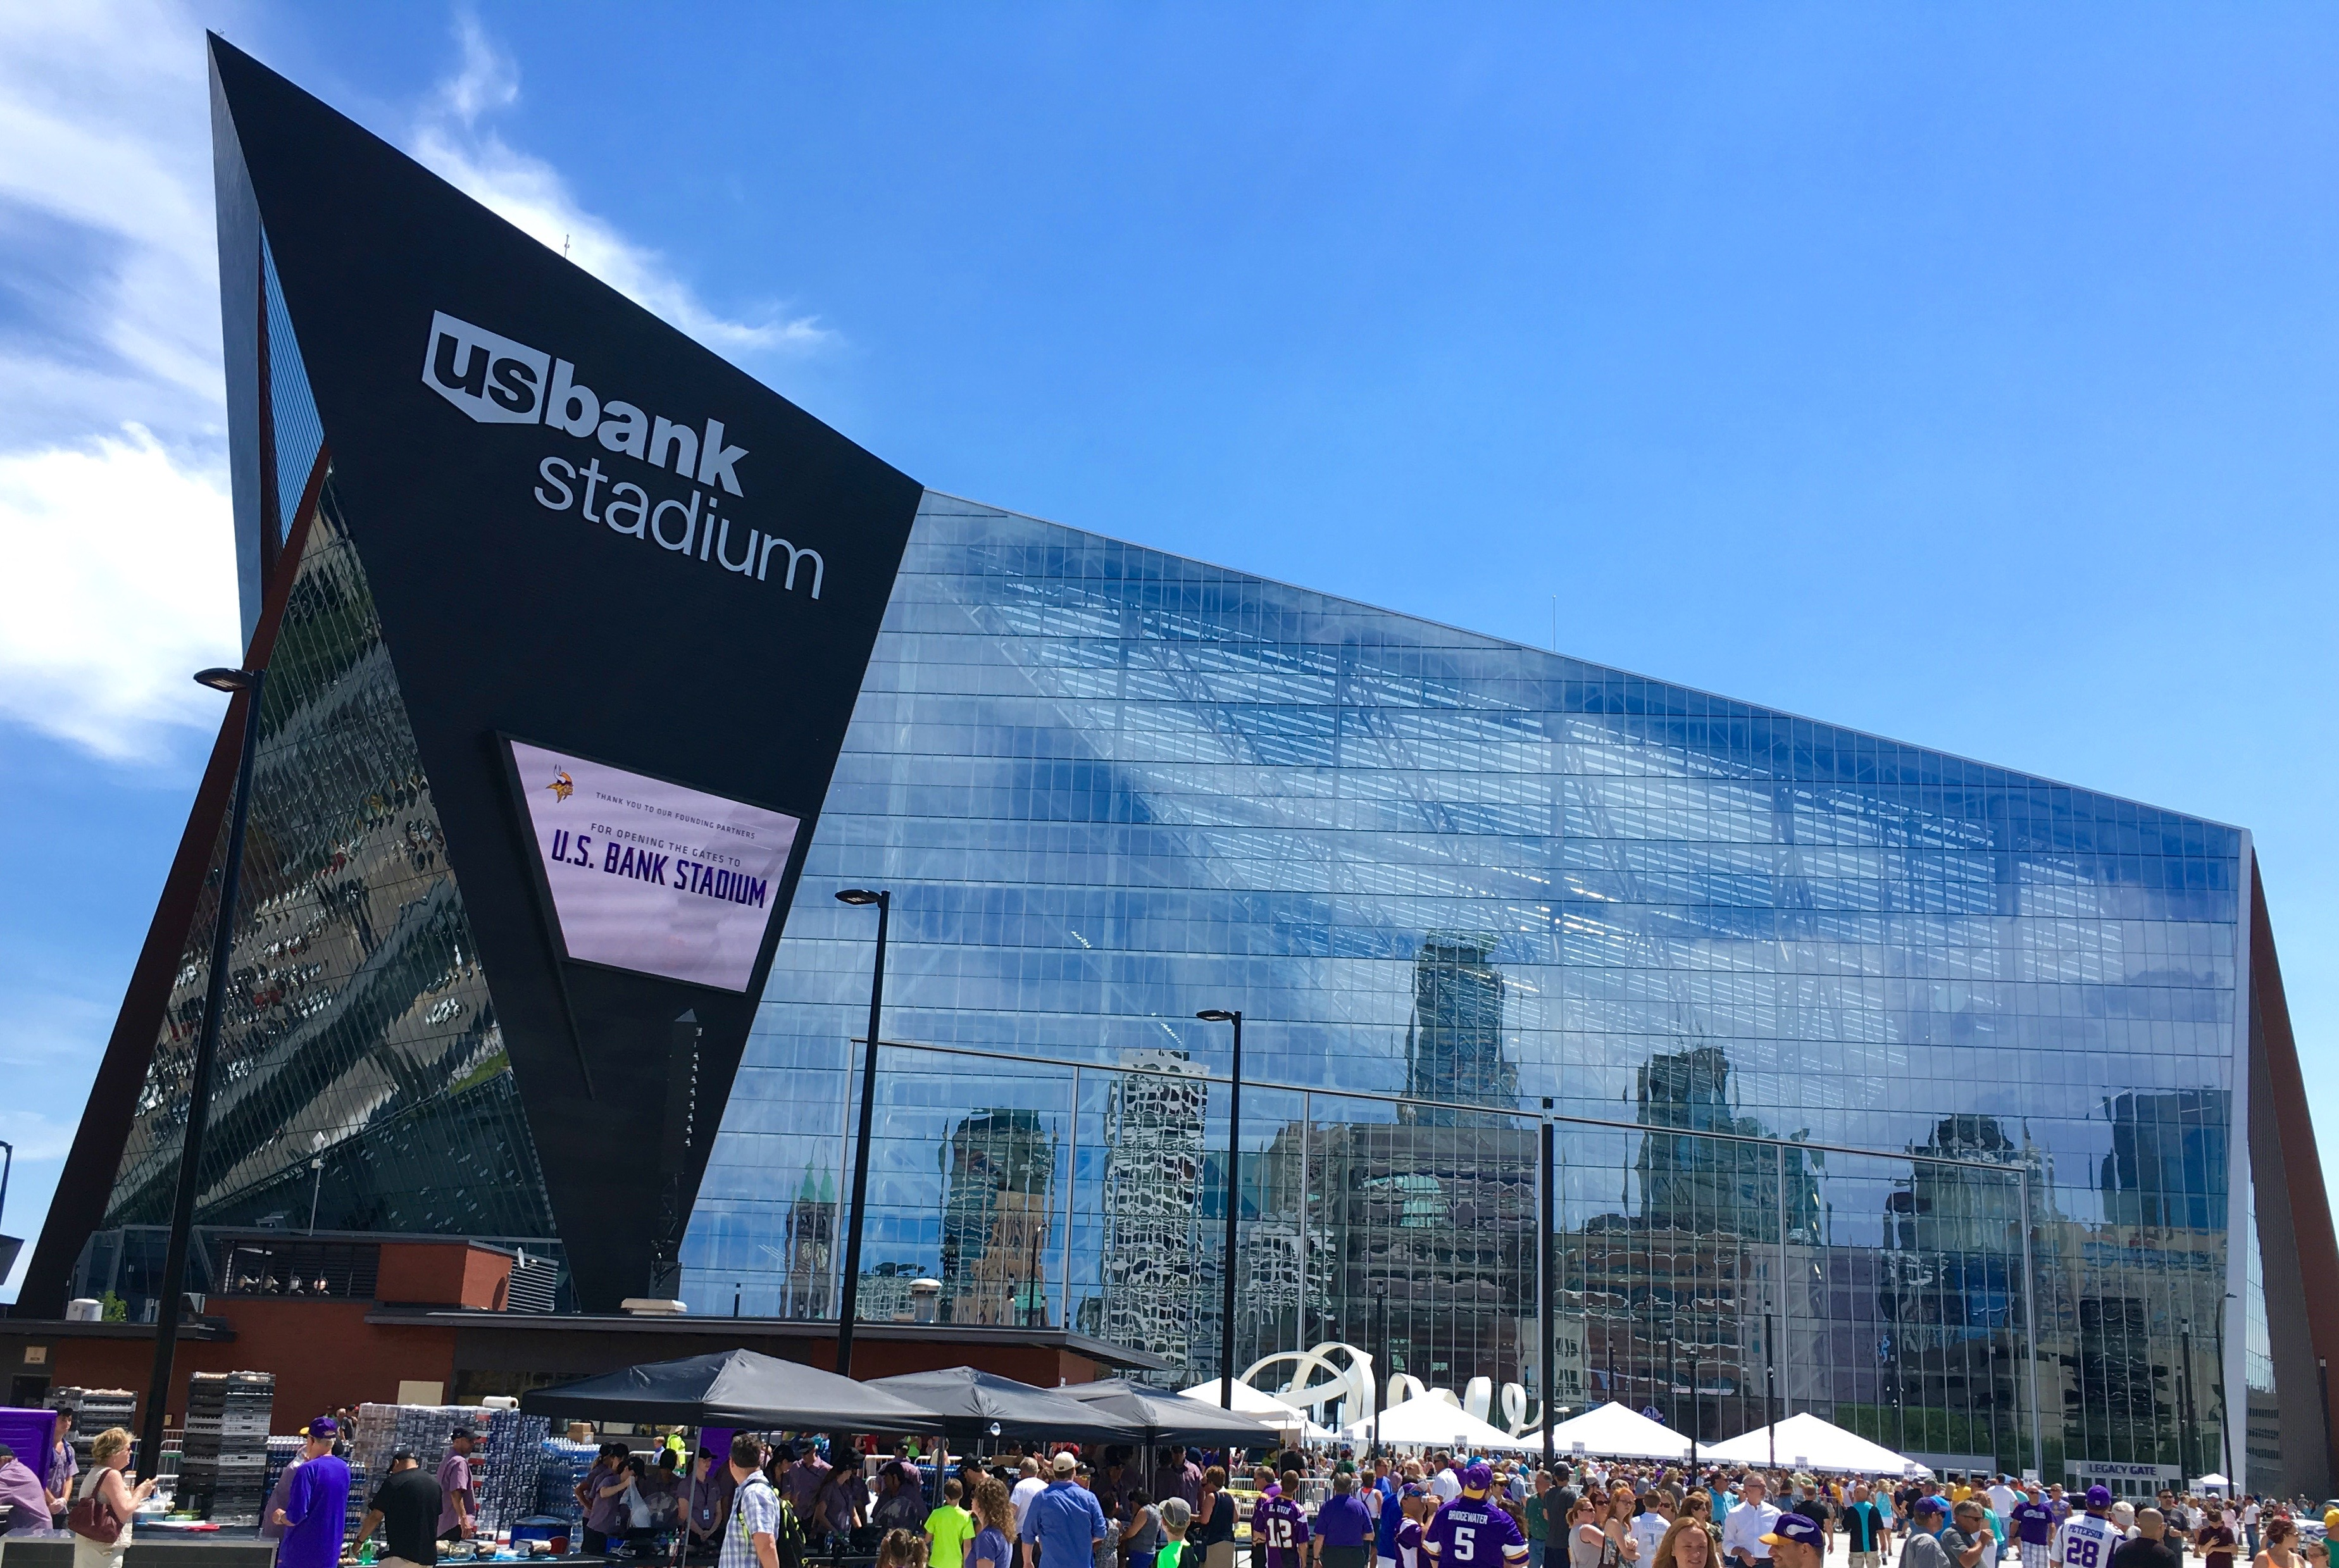 Outside view of US Bank Stadium